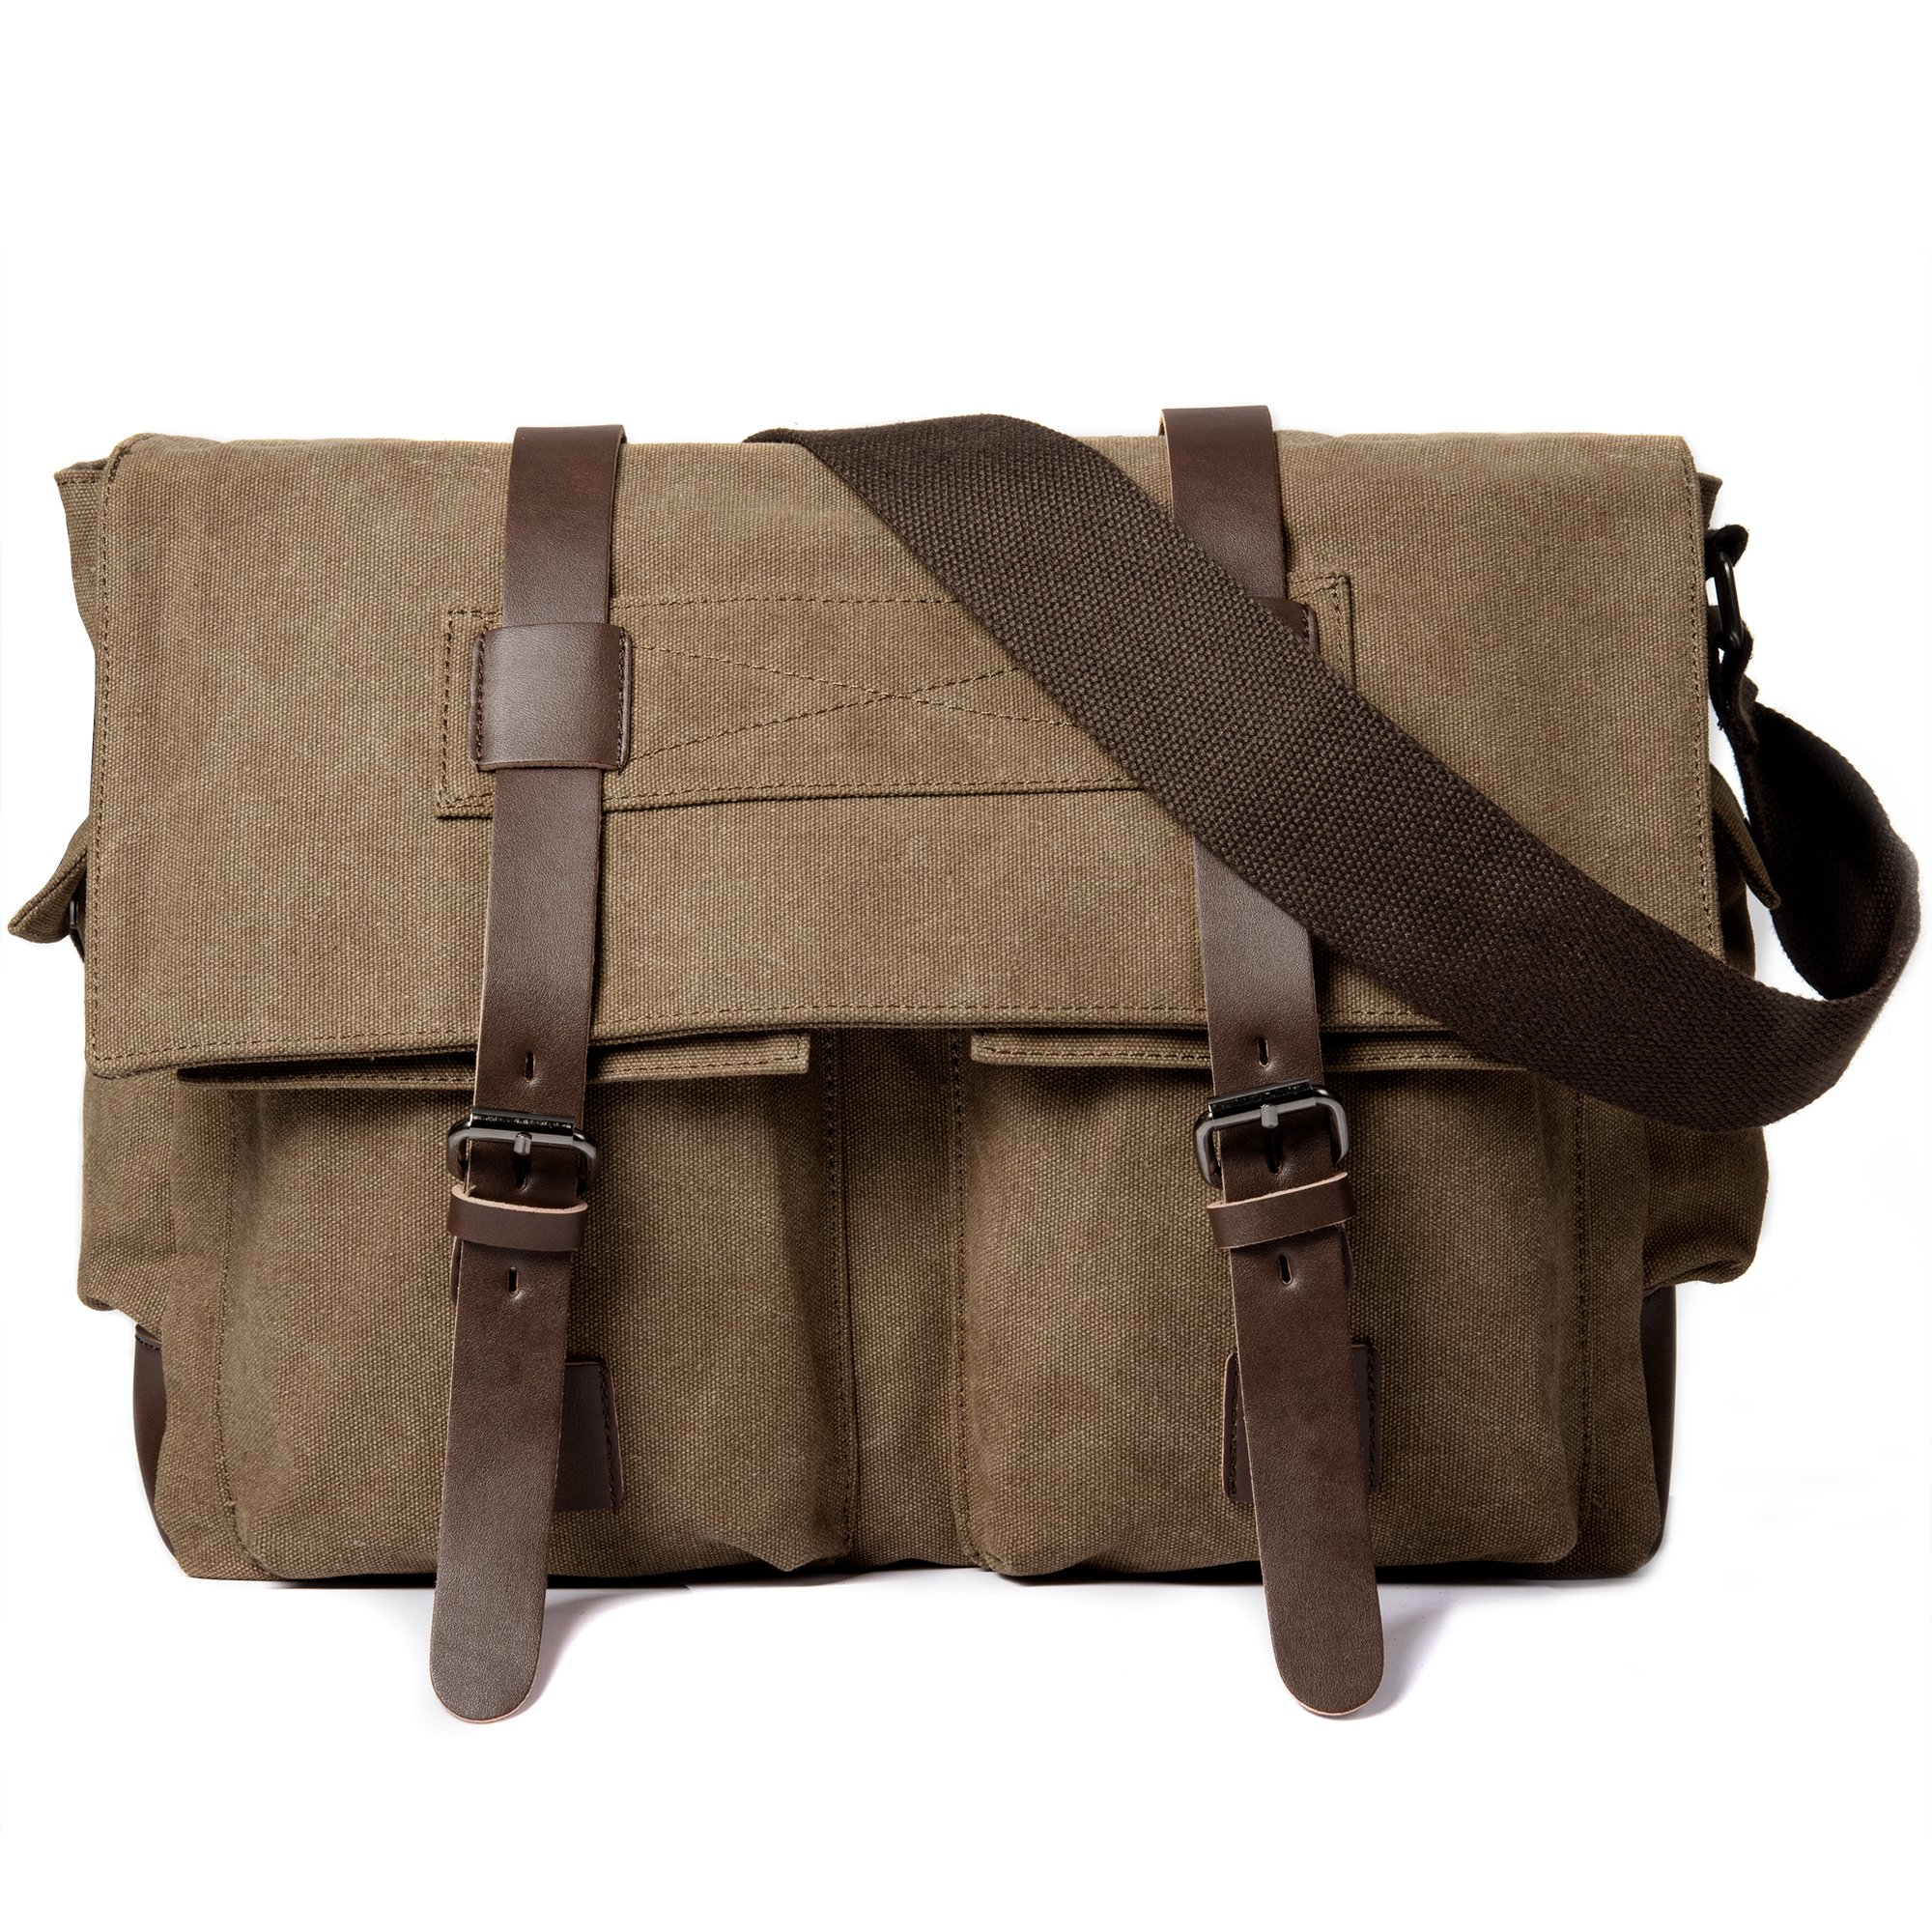 Messenger Bag, Cambond Canvas Laptop Satchel Bag Vintage 14'' Military Shoulder Bookbag Travel Bag for Men and Women Gift (Coffee)